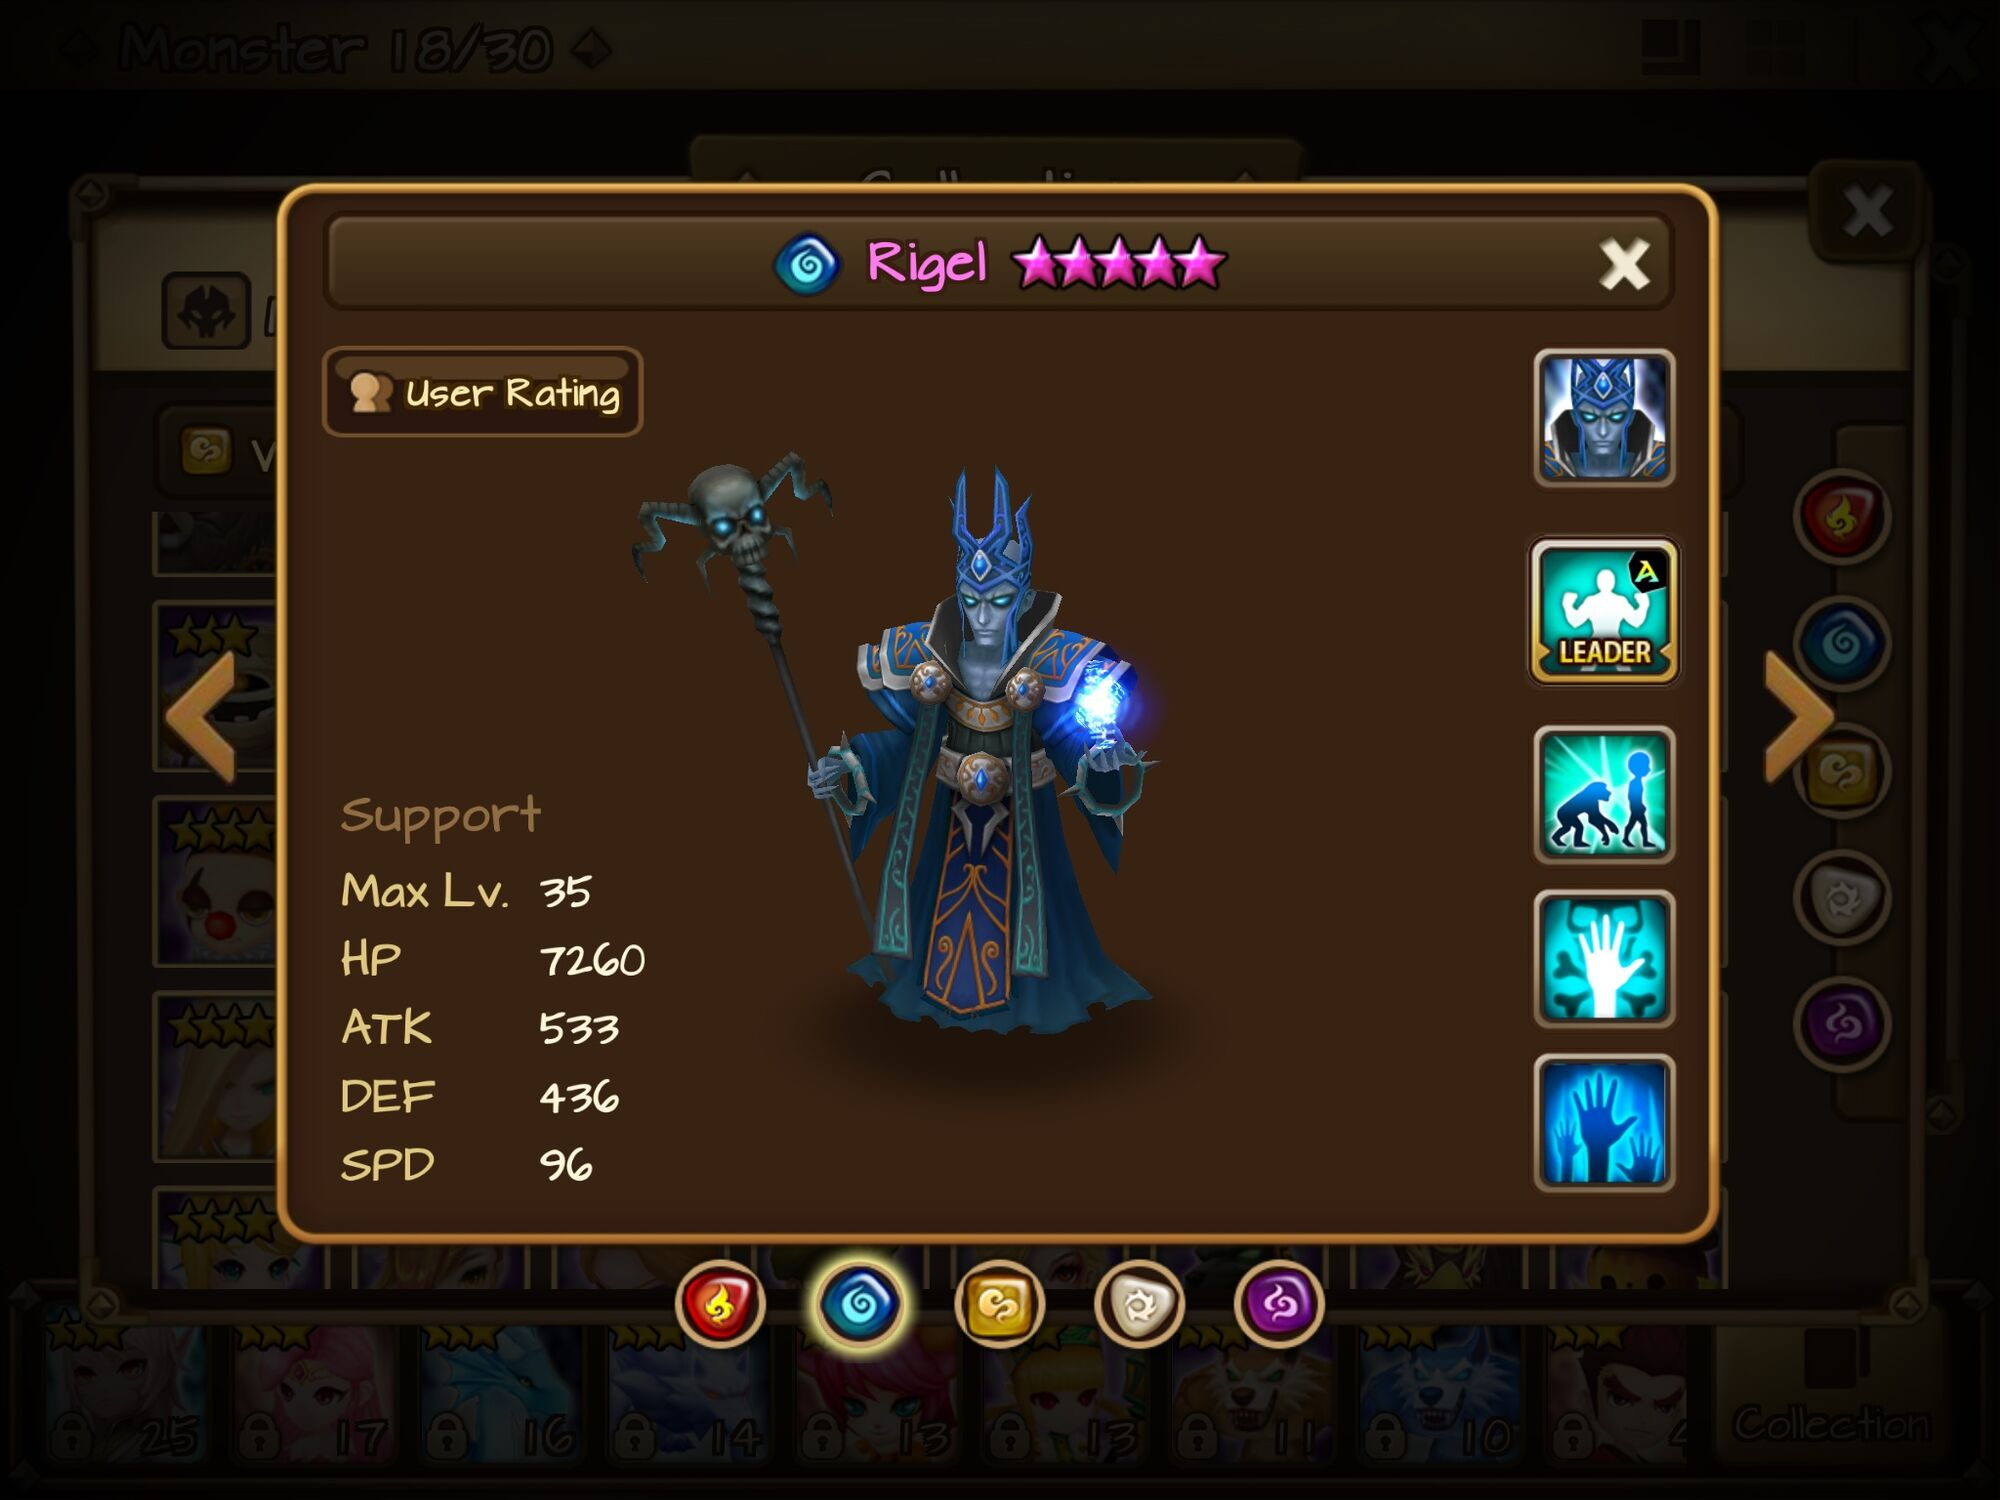 Lich (Water) - Rigel/Gallery and trivia | Summoners War Sky